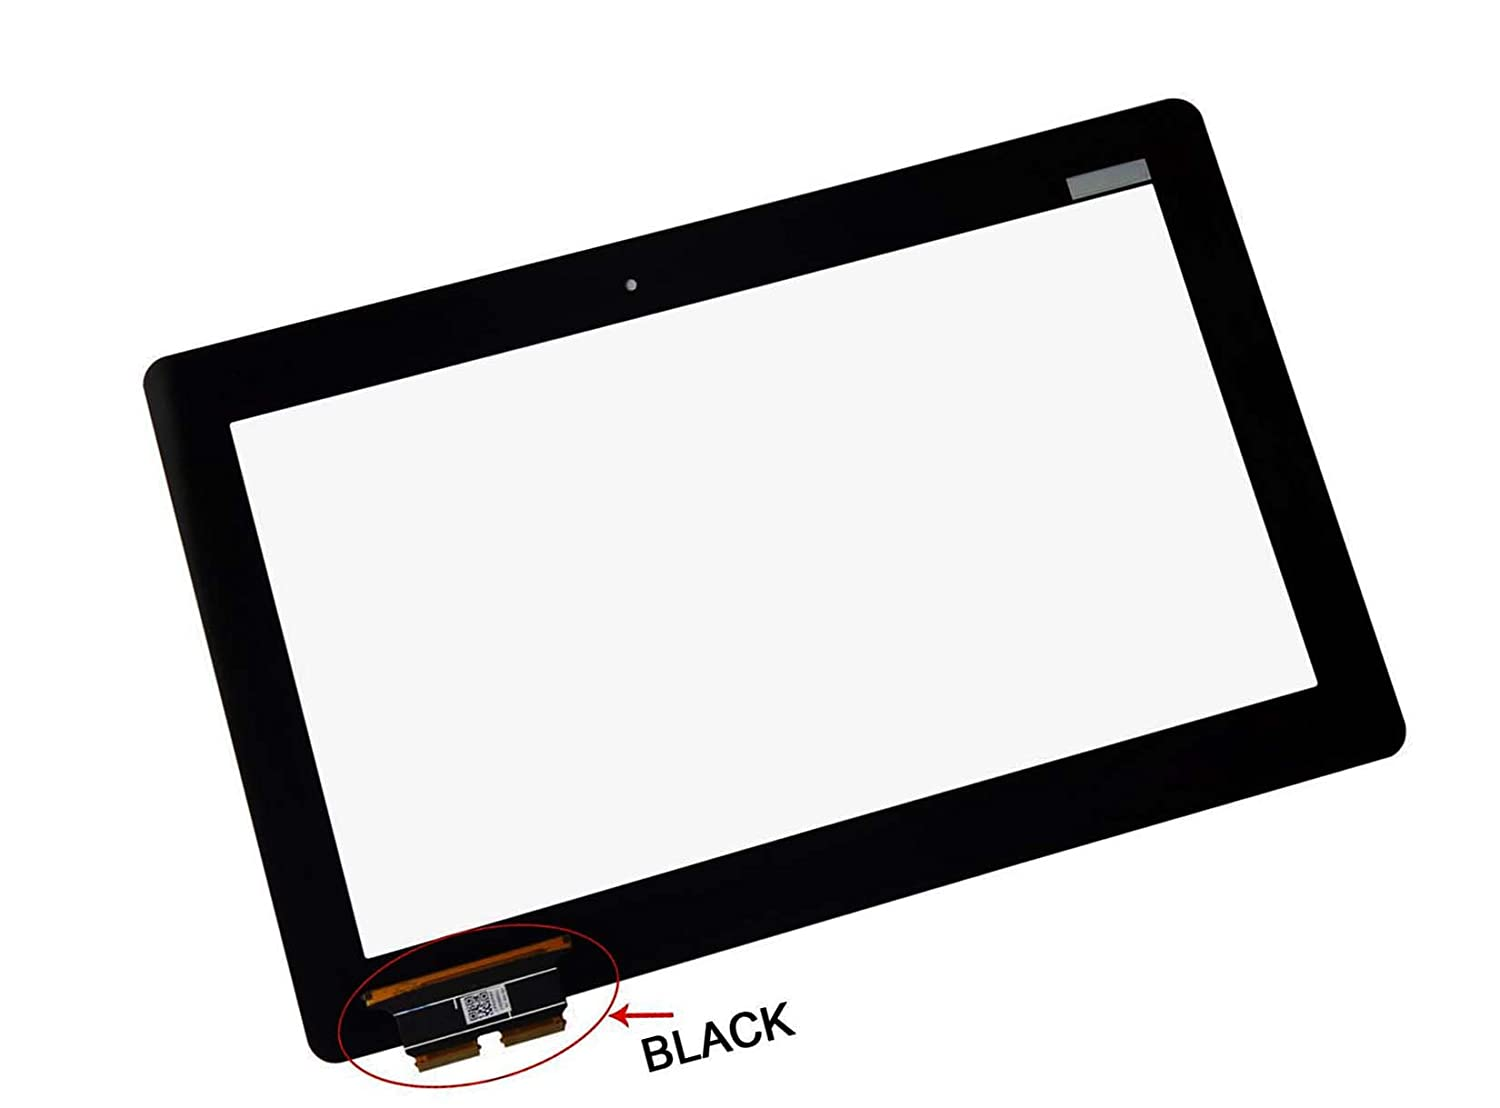 BLACK FPC InOneWorld/® Laptop Touch Screen Replacement Front Glass Digitizer for Asus Transformer Book T100 T100TA NO LCD, NO BEZEL